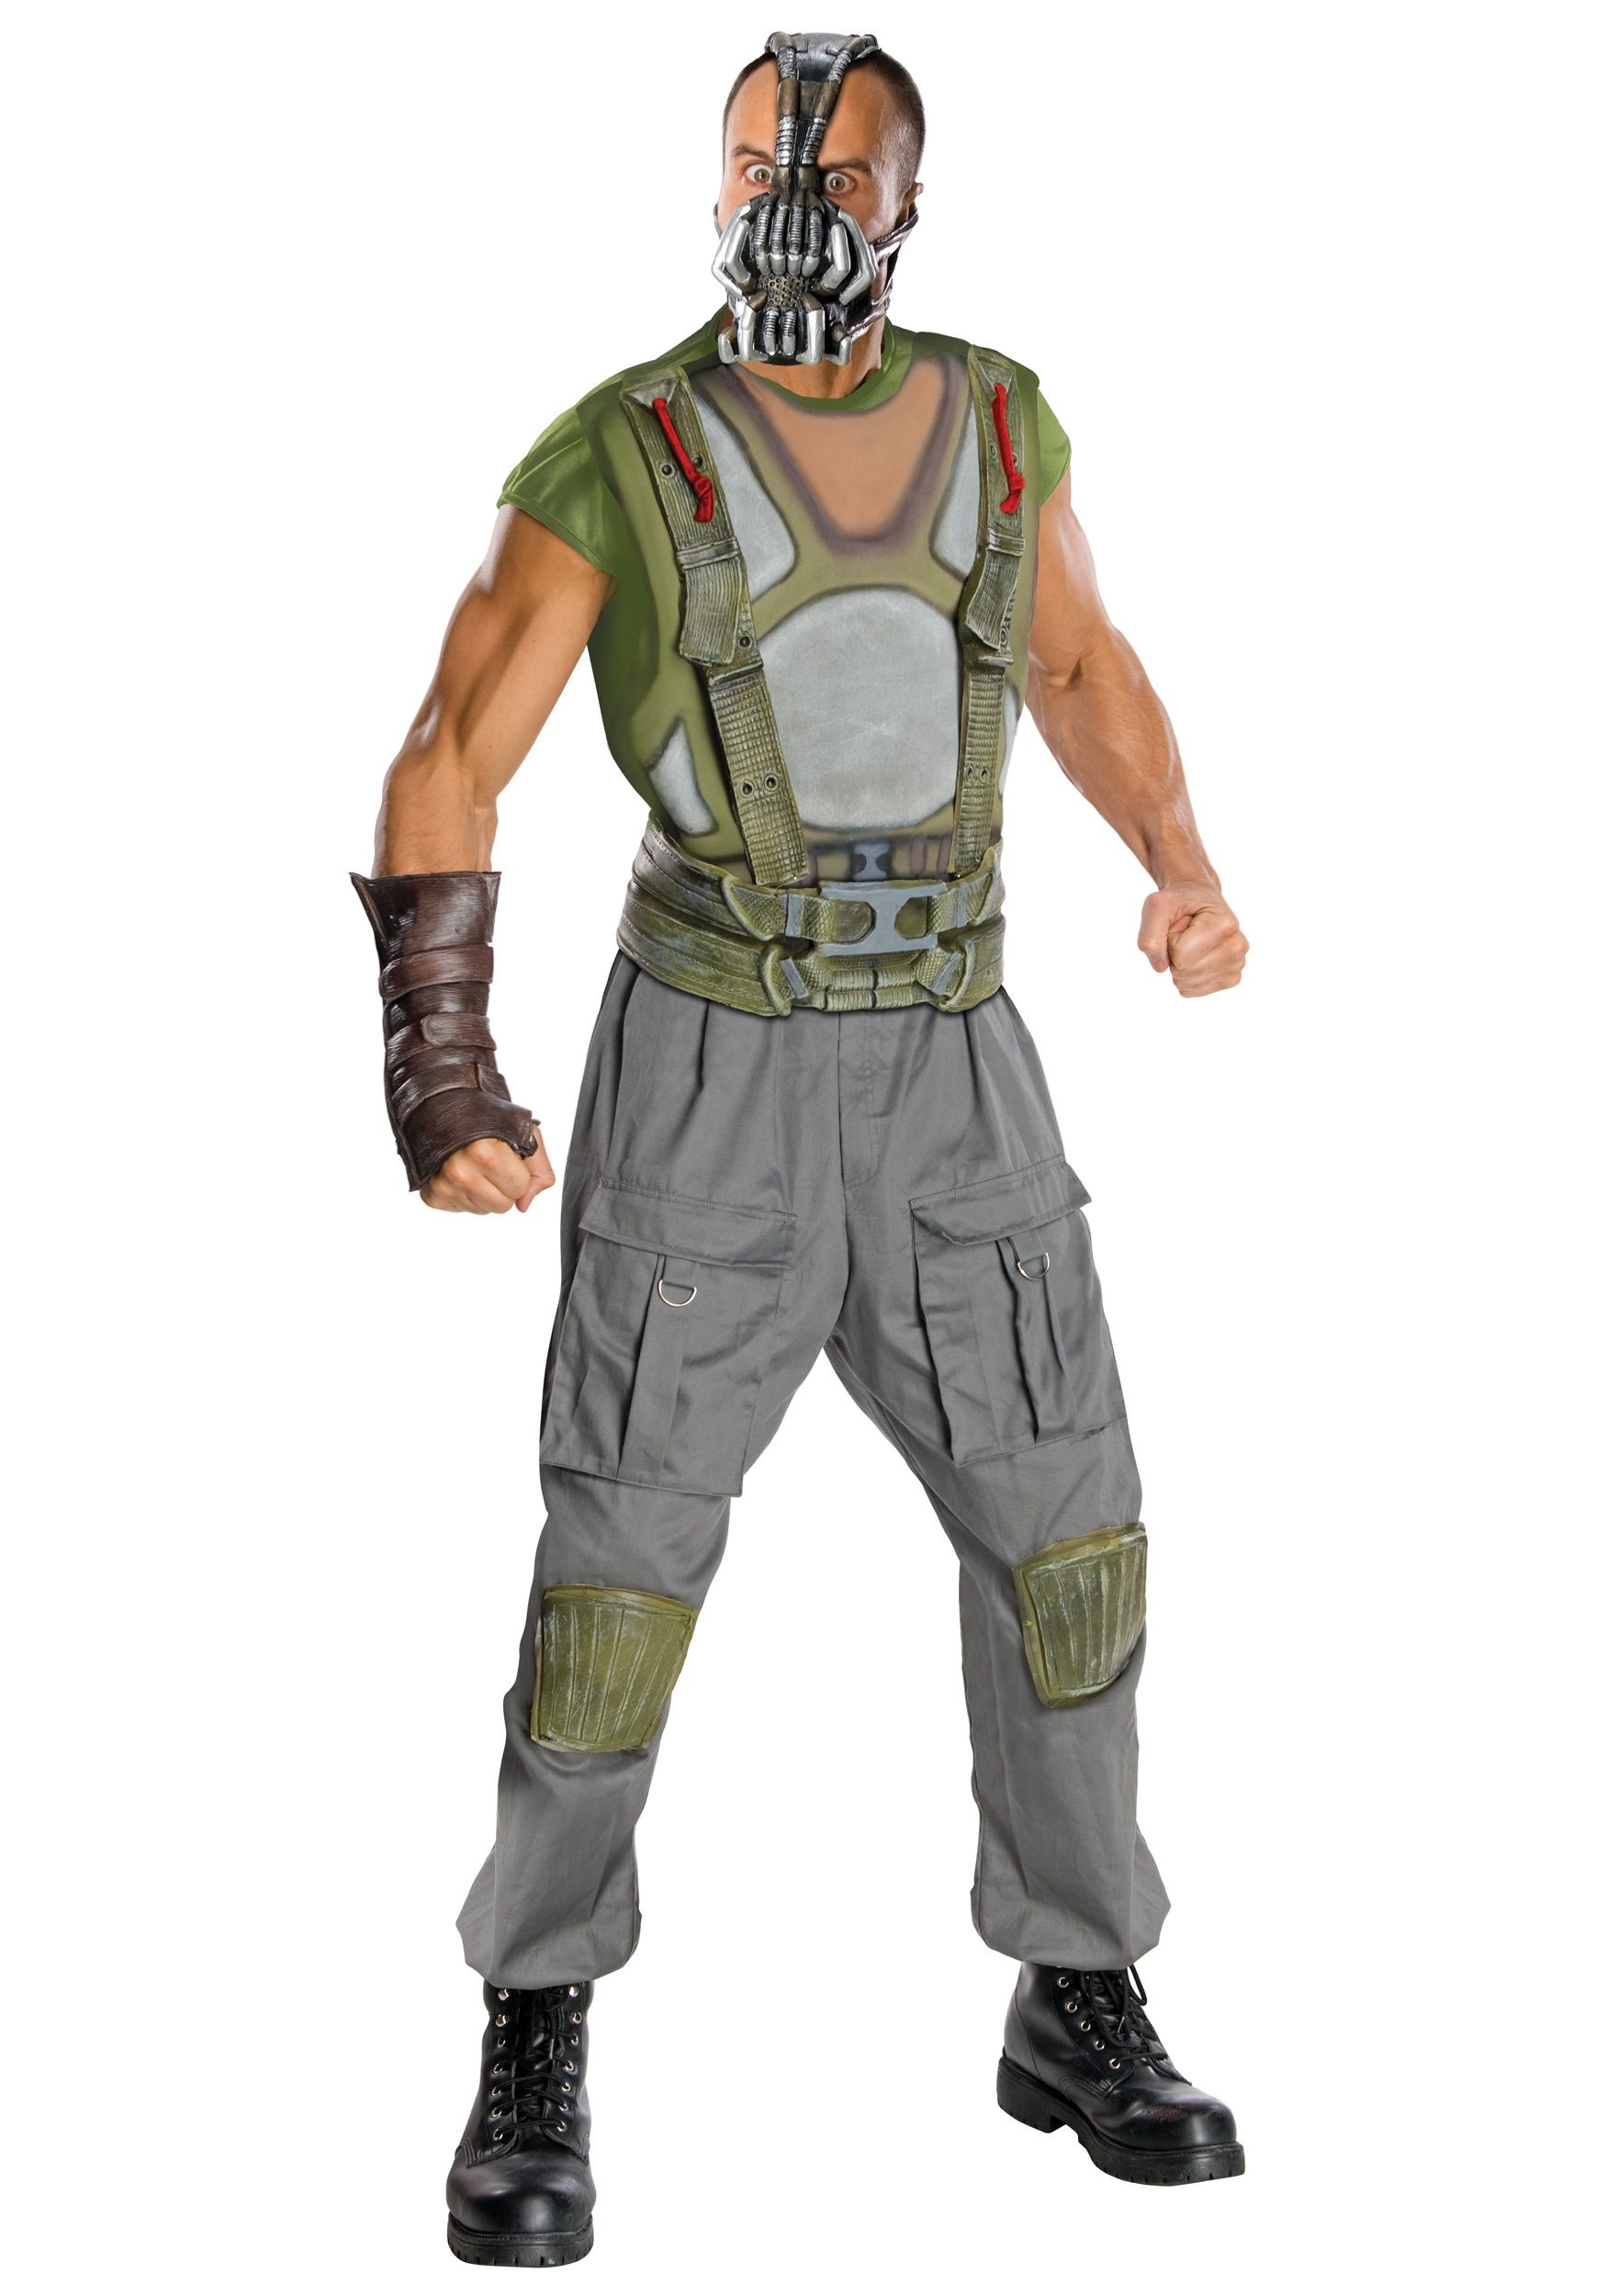 Mens Deluxe Bane Costume. Costumes For MenMenu0027s CostumesAdult ...  sc 1 st  Pinterest & Mens Deluxe Bane Costume | Halloween | Pinterest | Bane costume and ...